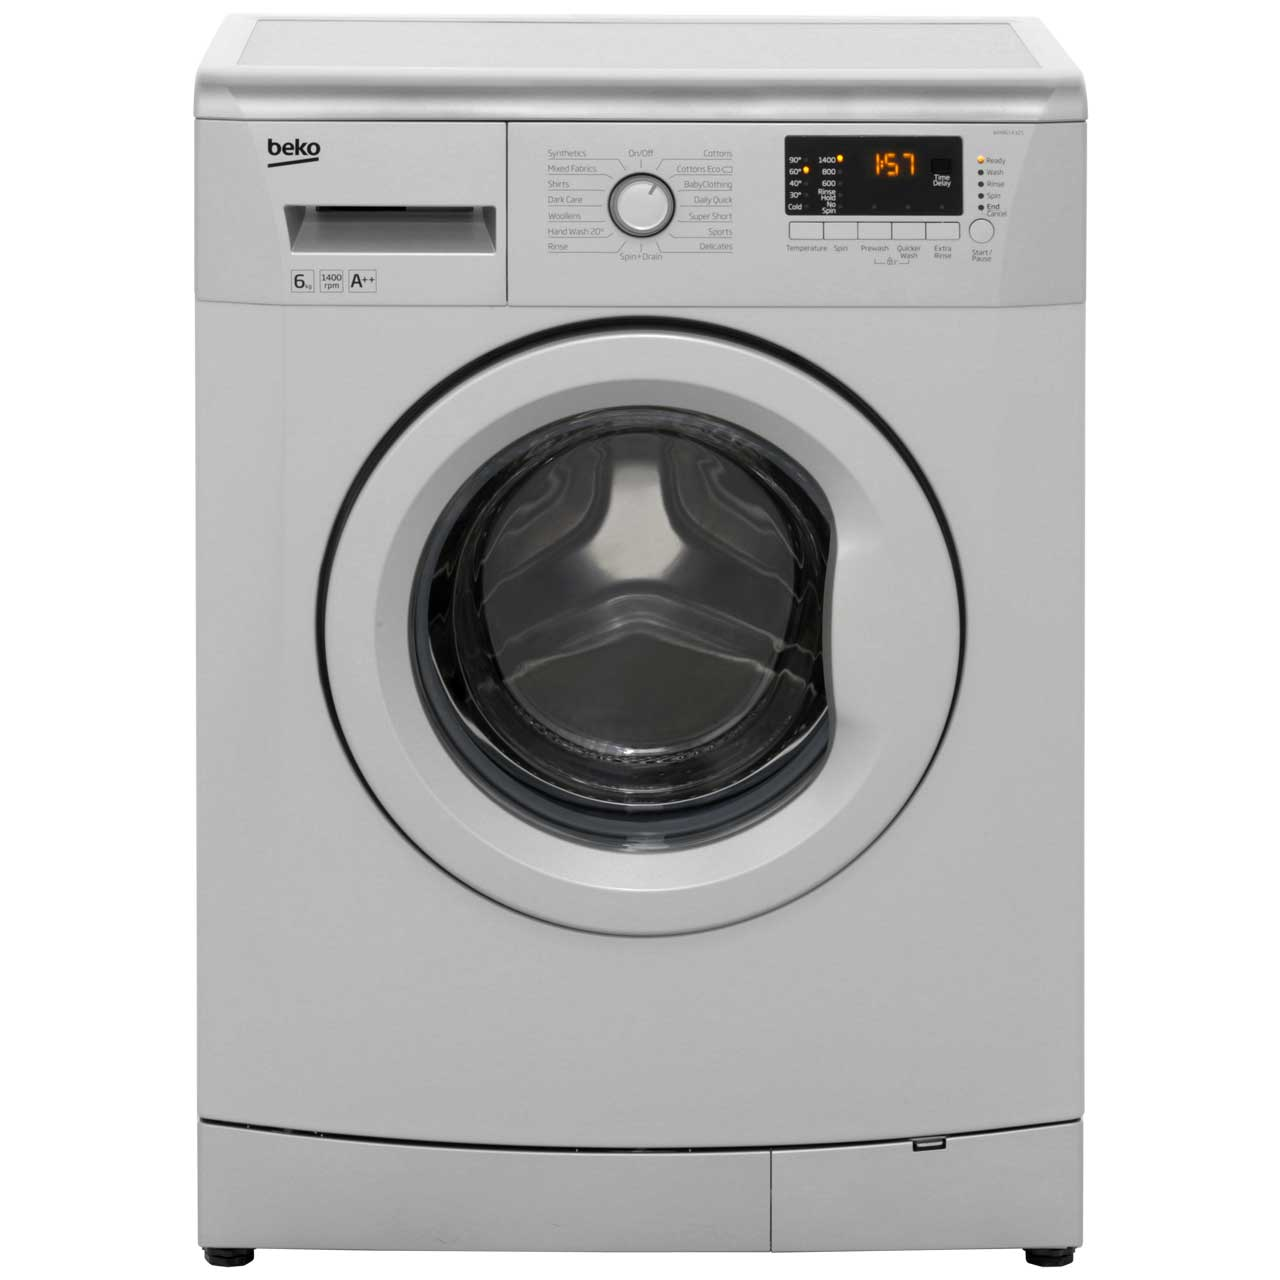 Beko WMB61432S 6Kg Washing Machine with 1400 rpm - Silver